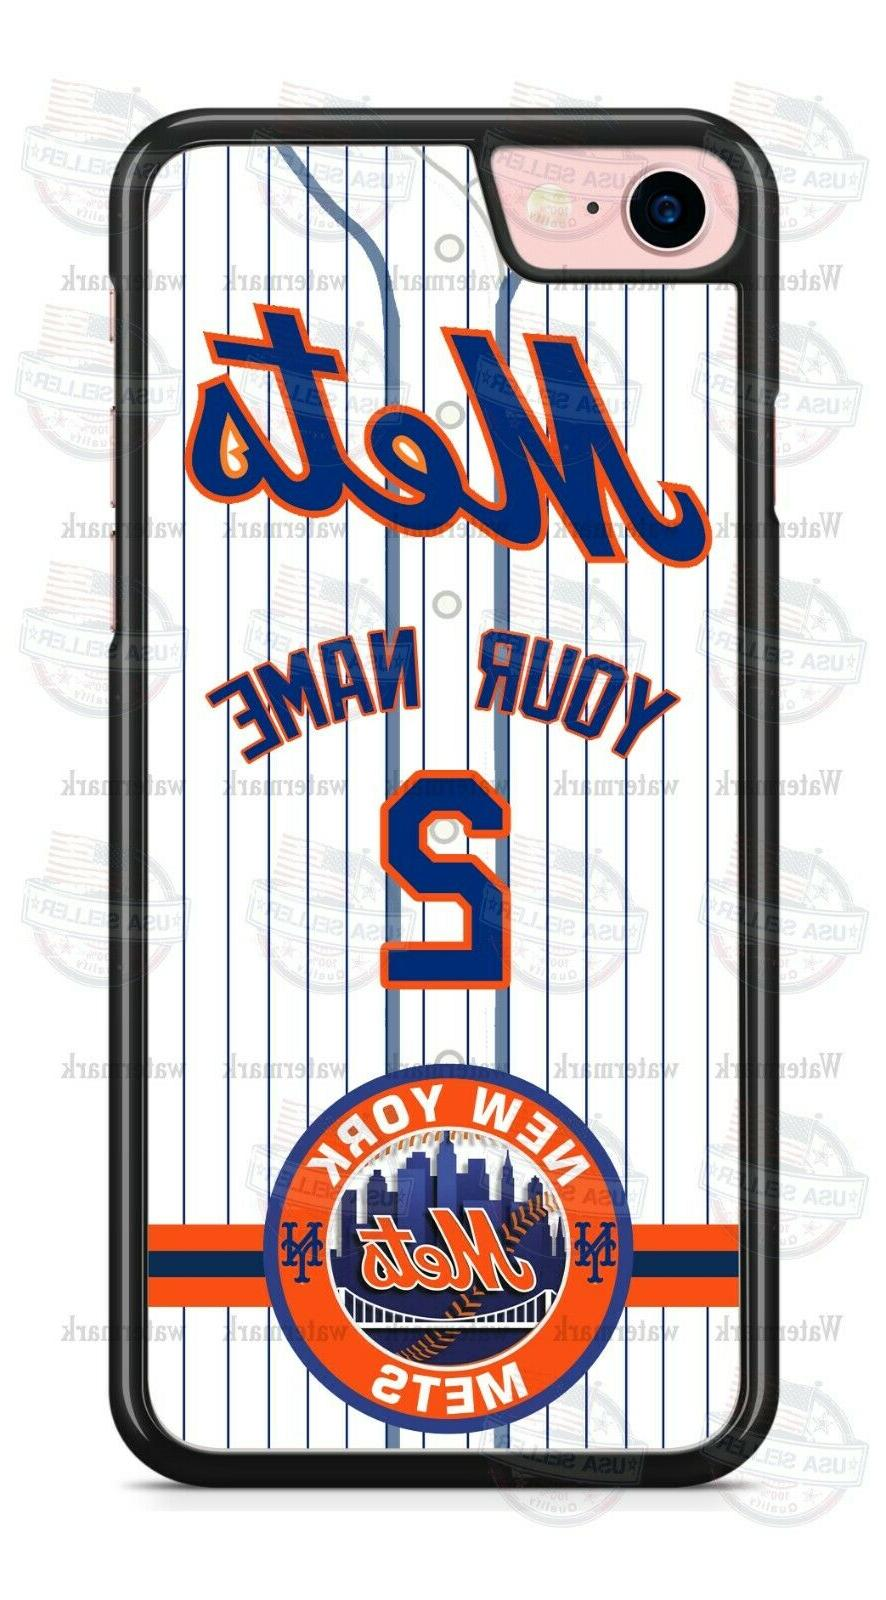 NEW YORK METS BASEBALL CUSTOMIZED PHONE CASE COVER FITS iPHO